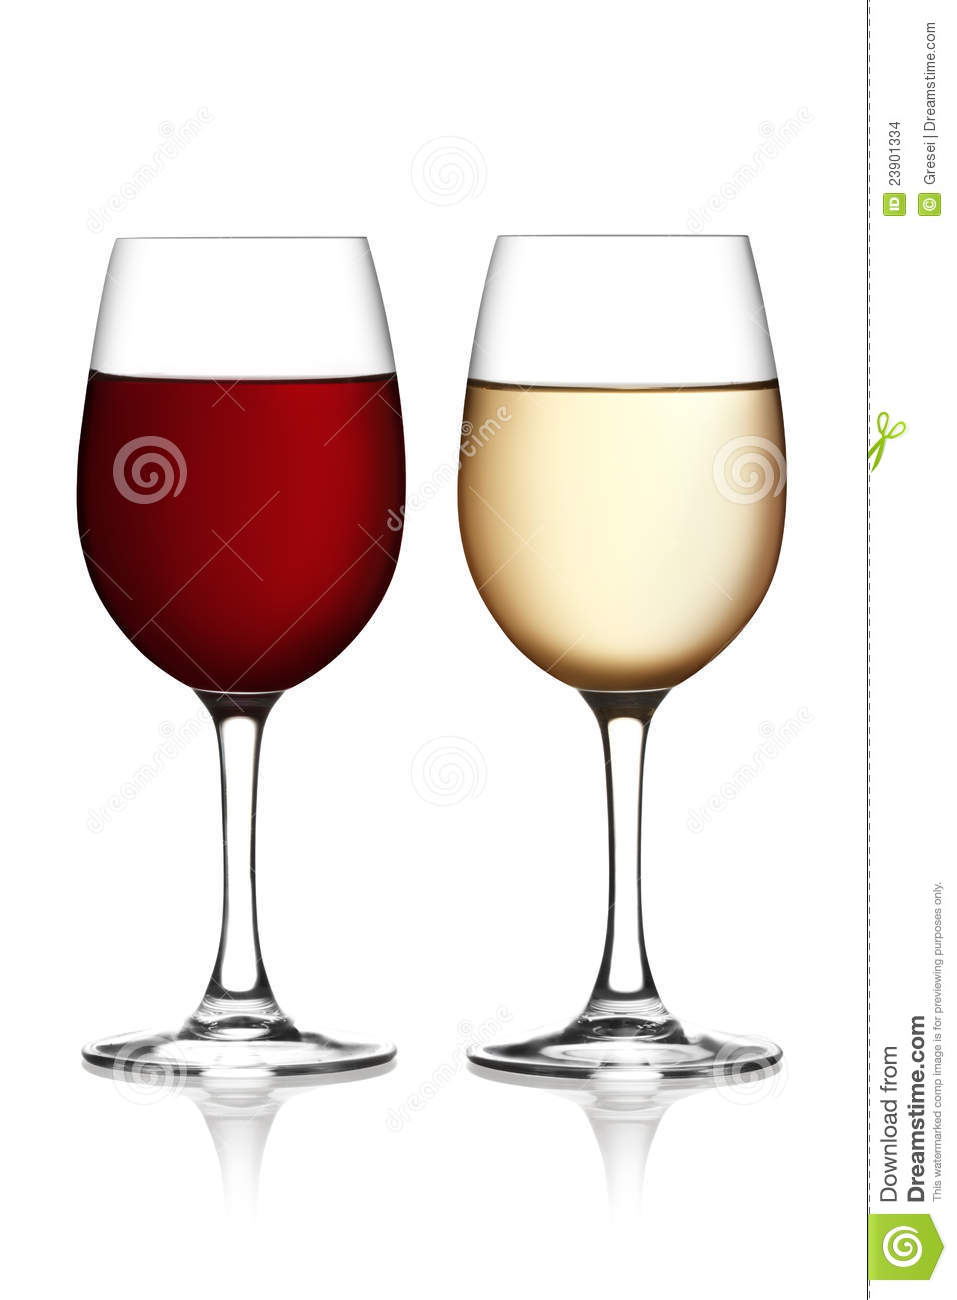 Glass Of Red And White Wine Stock Photo - Image: 23901334